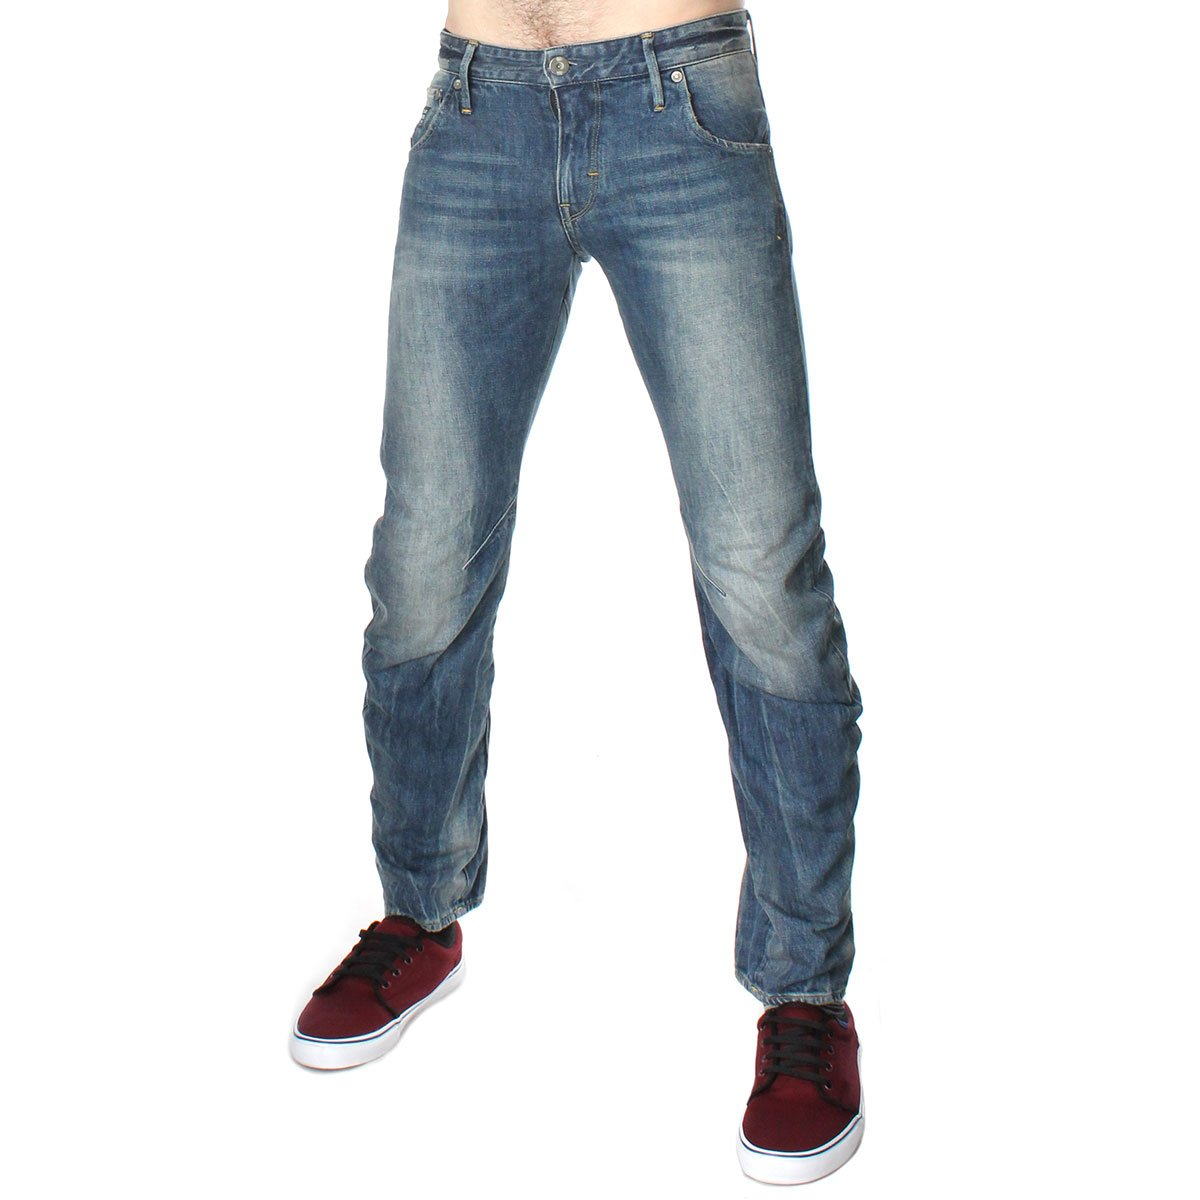 g star arc 3d slim jeans g star from the menswear site uk. Black Bedroom Furniture Sets. Home Design Ideas